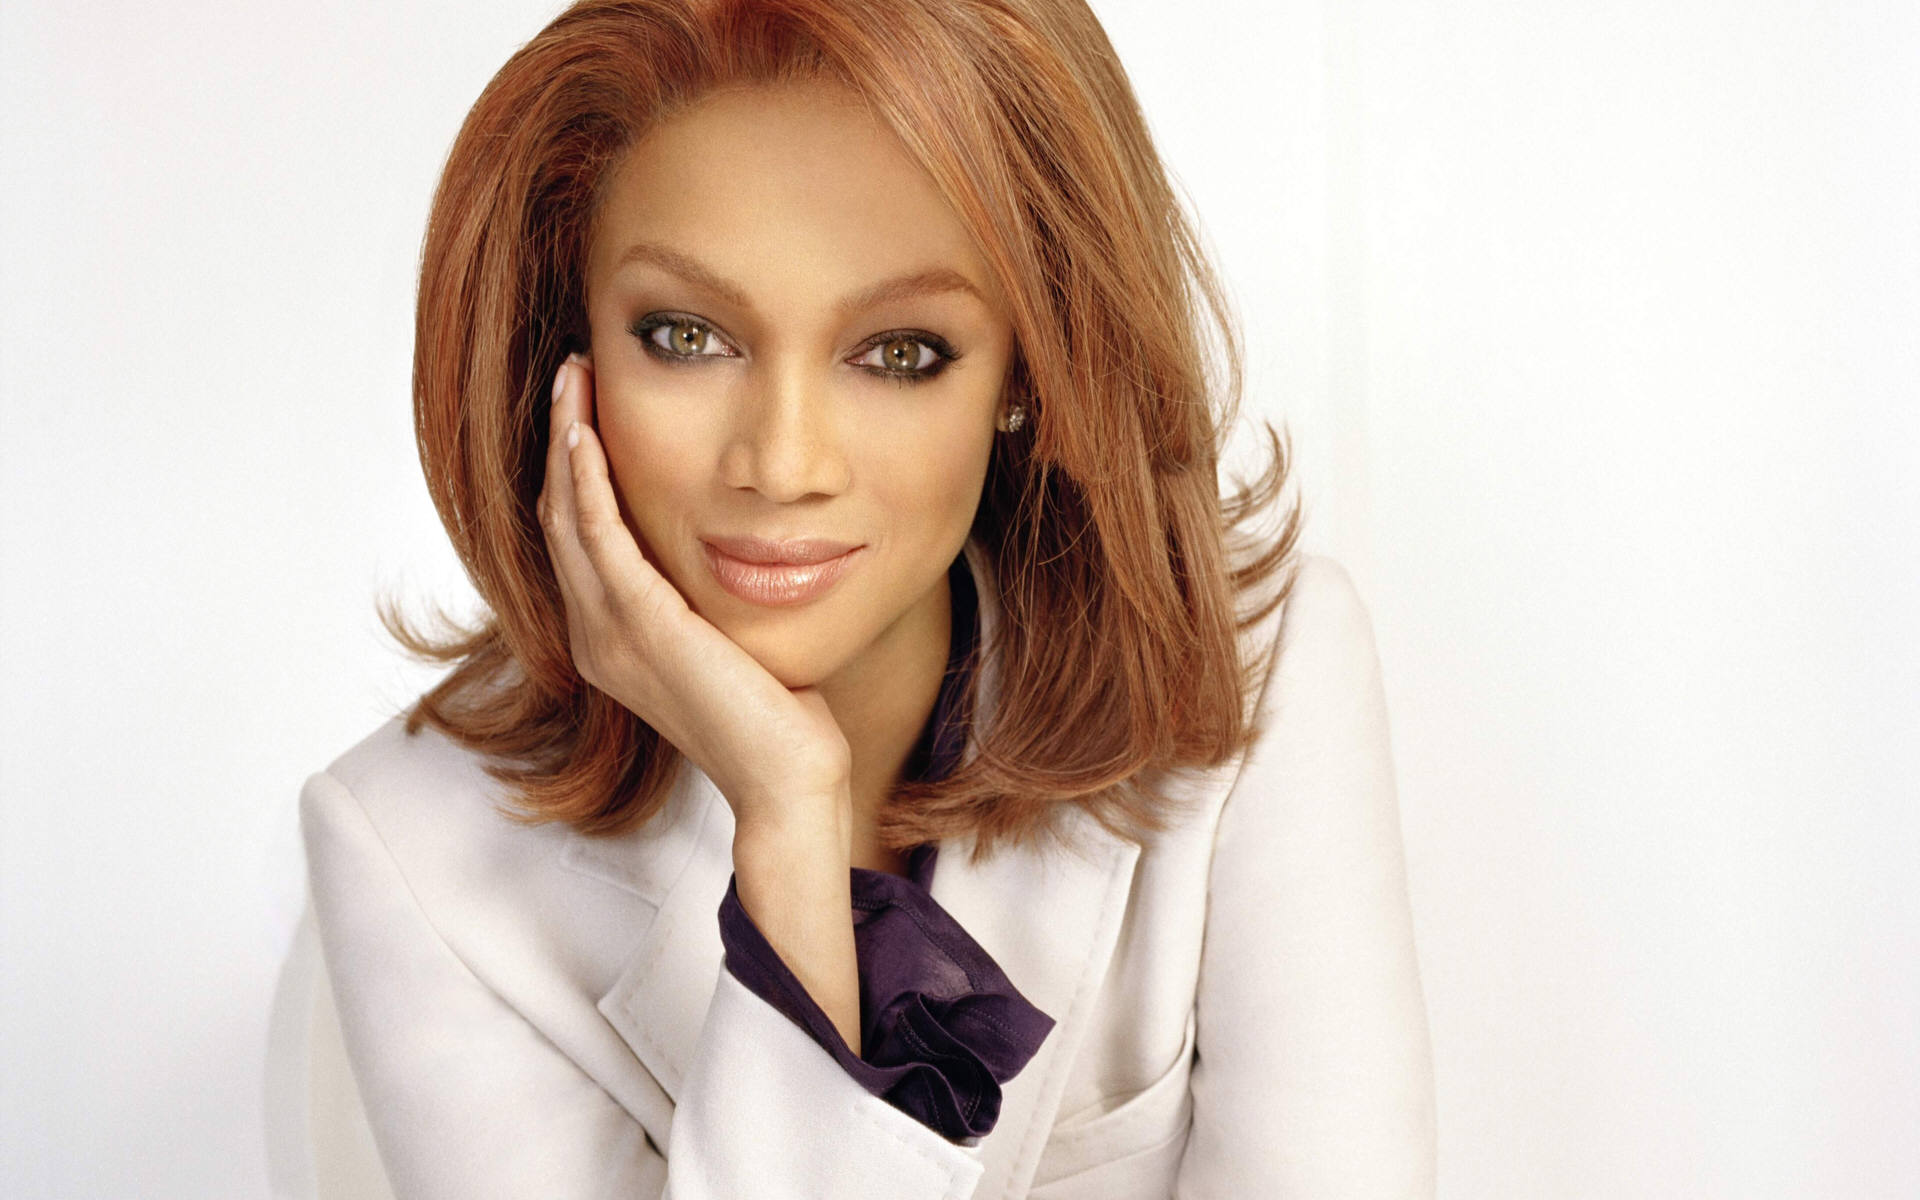 Tyra Banks is an American television personality, producer, businesswoman, actress, author, former model and occasional singer. Born in Inglewood, California, she began her career as a model at age 15, and was the first African American woman to be featured on the covers of GQ and the Sports Illustrated Swimsuit Issue, on which she appeared twice. She was a Victoria's Secret Angel from 1997 to 2005. By the early 2000s, Banks was one of the top-earning models in the world.